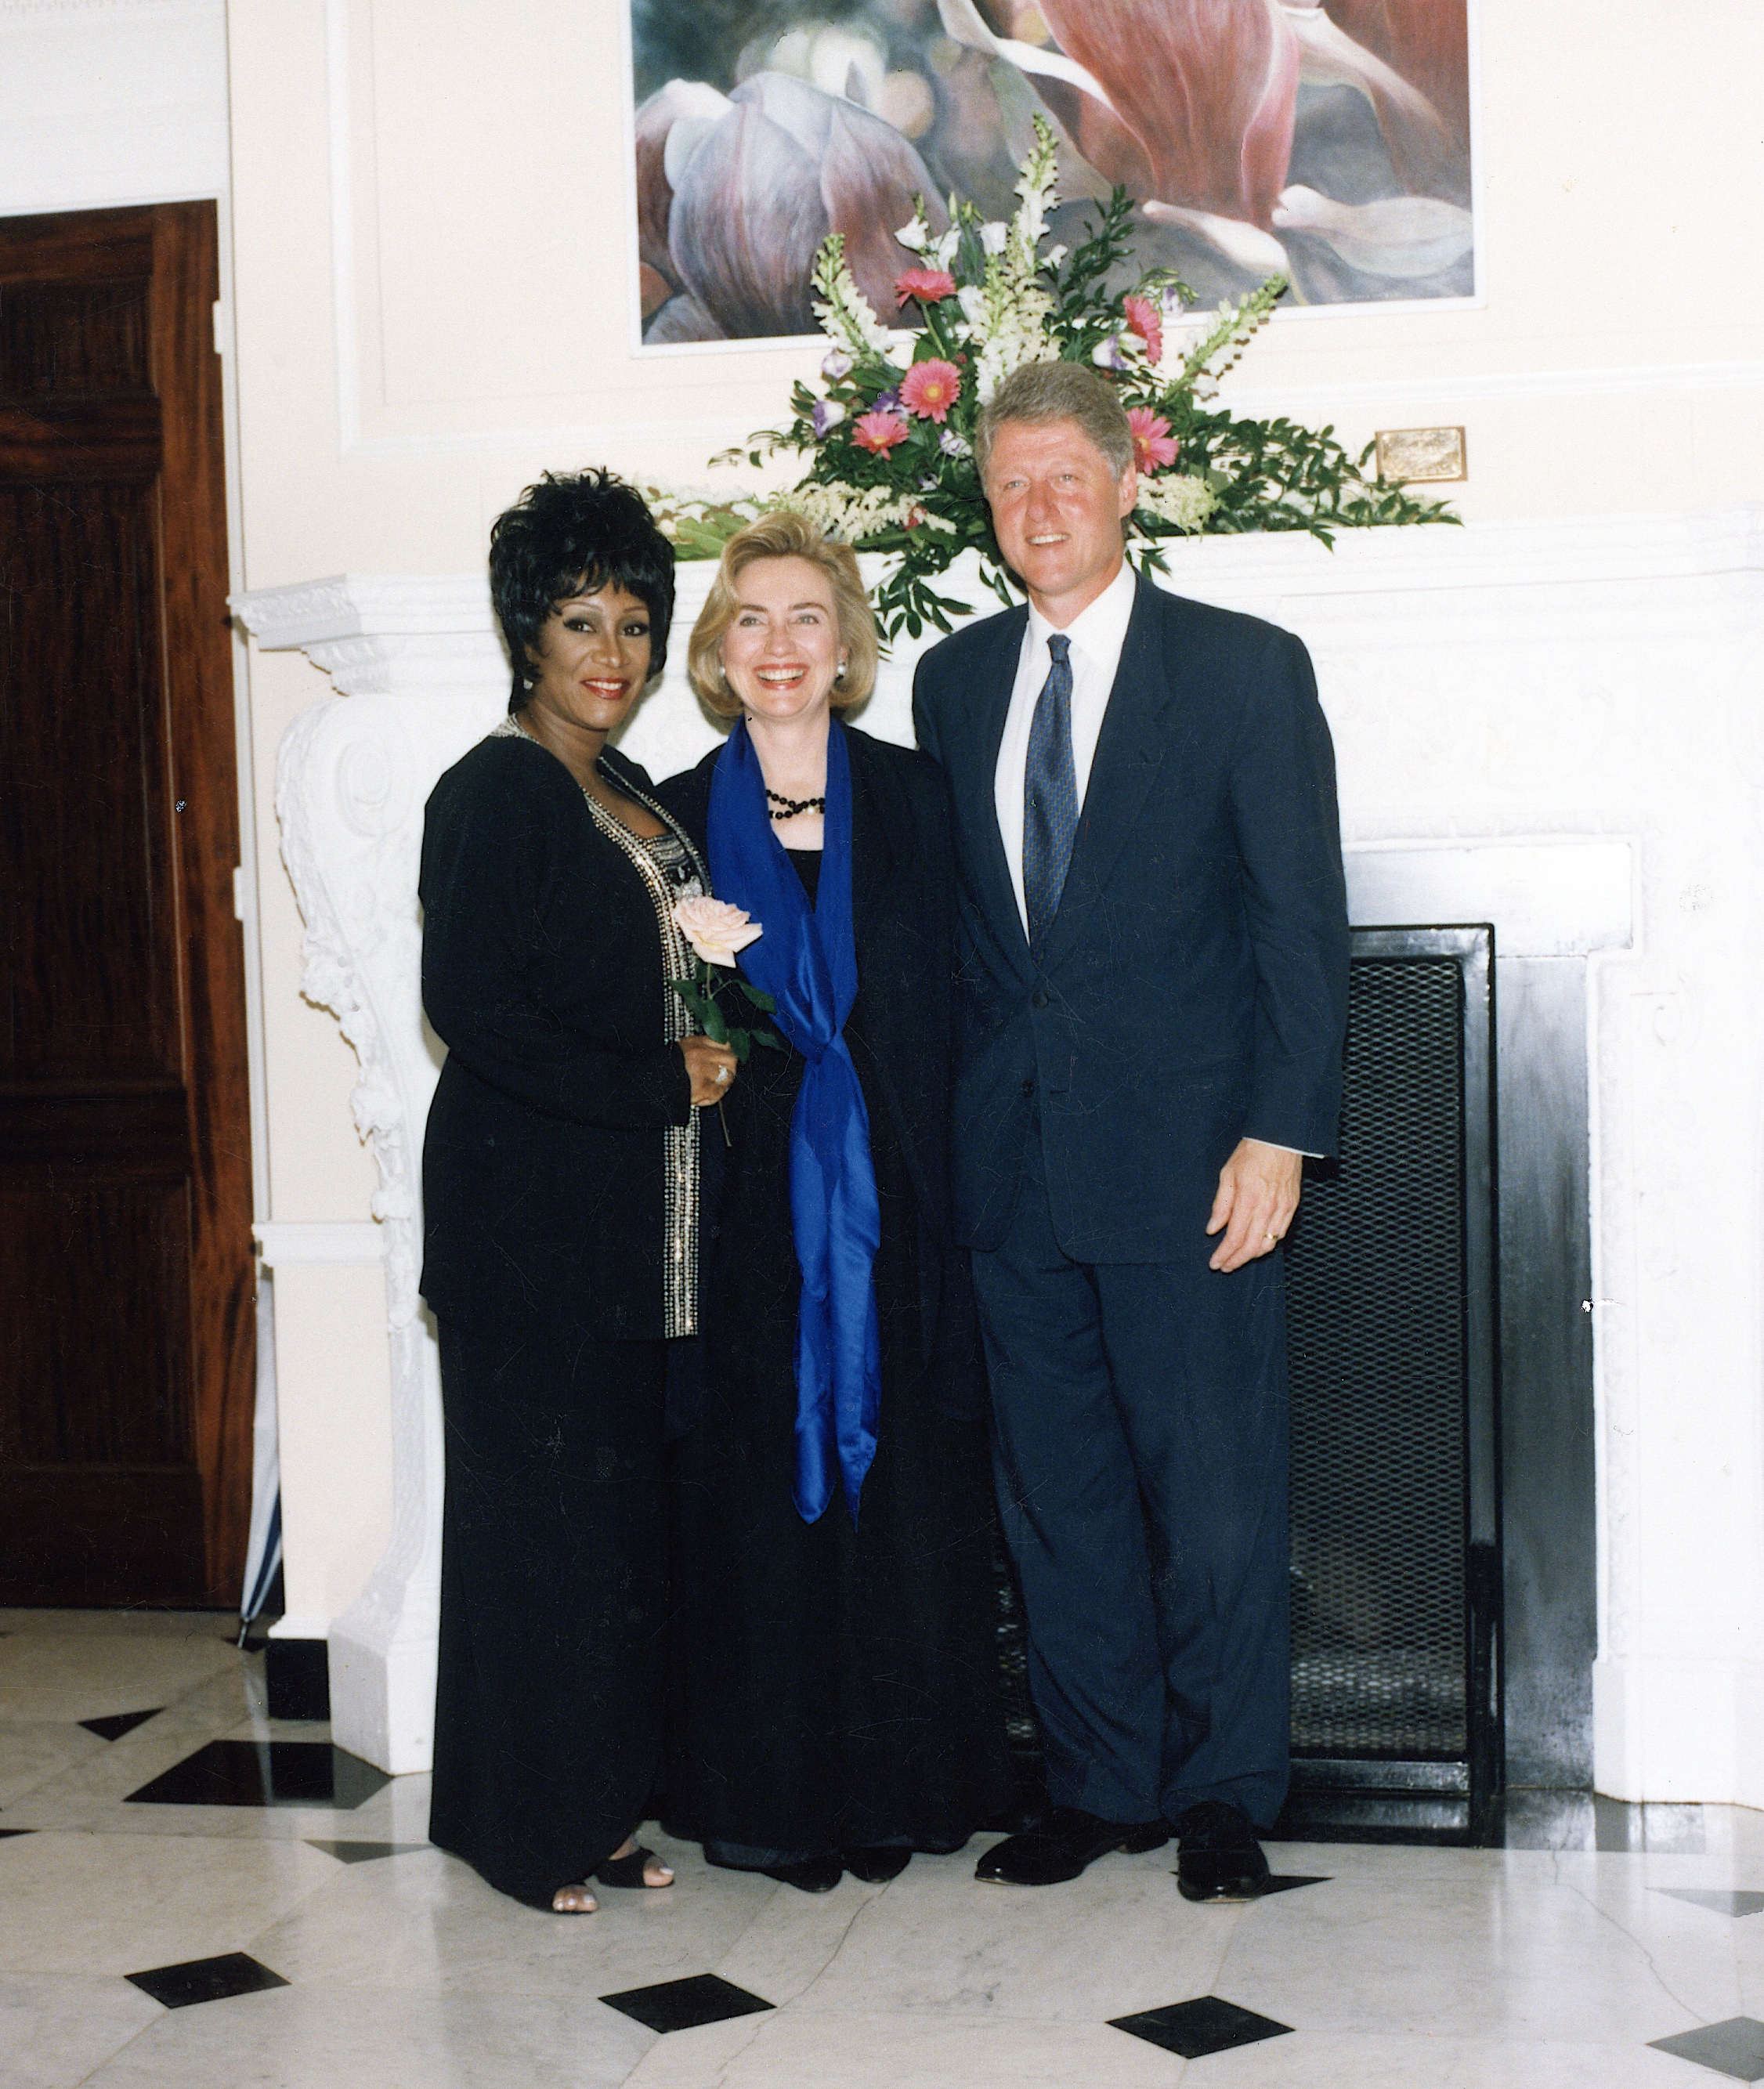 Clintons and Patti LaBelle